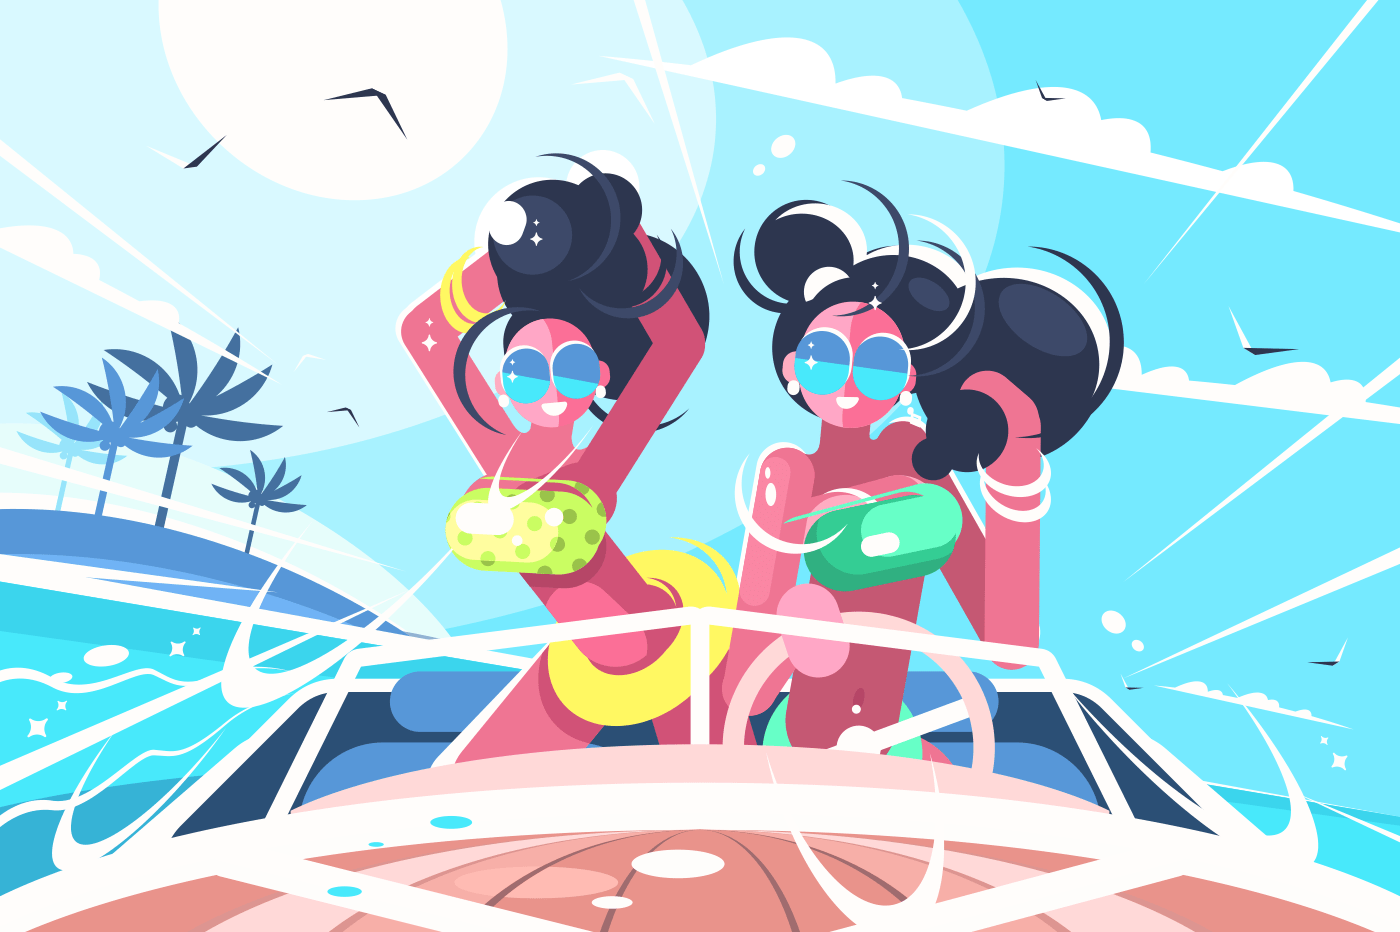 Girls in bathing suits riding speedboat in sea. Vector illustration